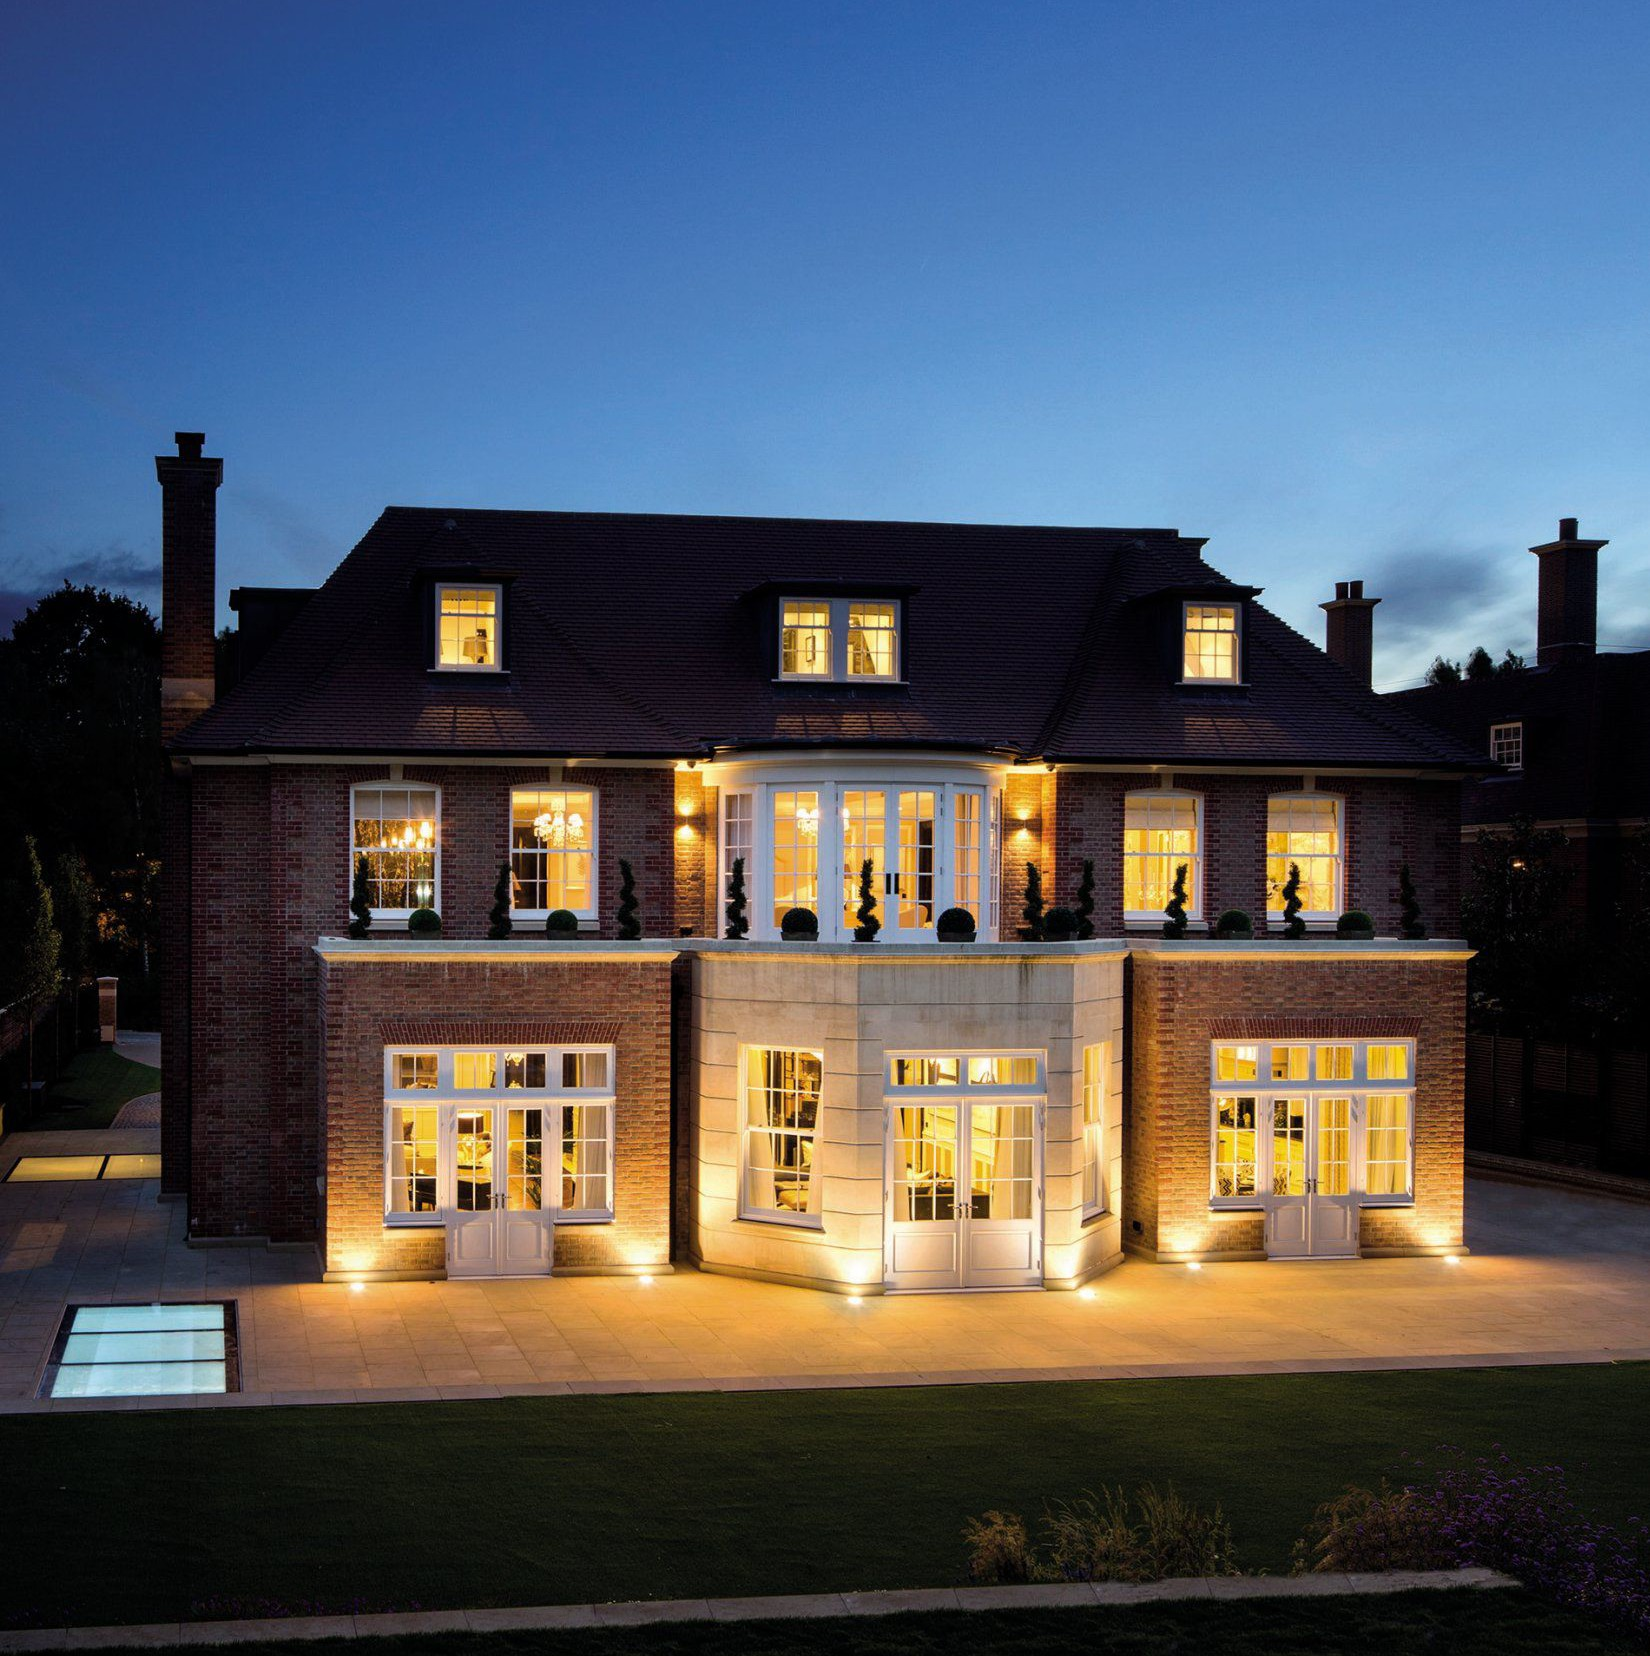 This brand new mansion with its own wine tasting and cigar smoking floor has sold for more than £30 million in one of the biggest deals of the past 12 months. See SWNS story SWSALE: The Halcyon is a seven bedroom, state-of-the-art home with 24-hour security and an underground car park. It was put on the market by Knight Frank, Savills and Glentree Estates last year for a bumper £32.5 million. And it has now sold for ìnot shy of the asking priceî in a deal which is set to net the government between £3.5 and £4.5 million in stamp duty.